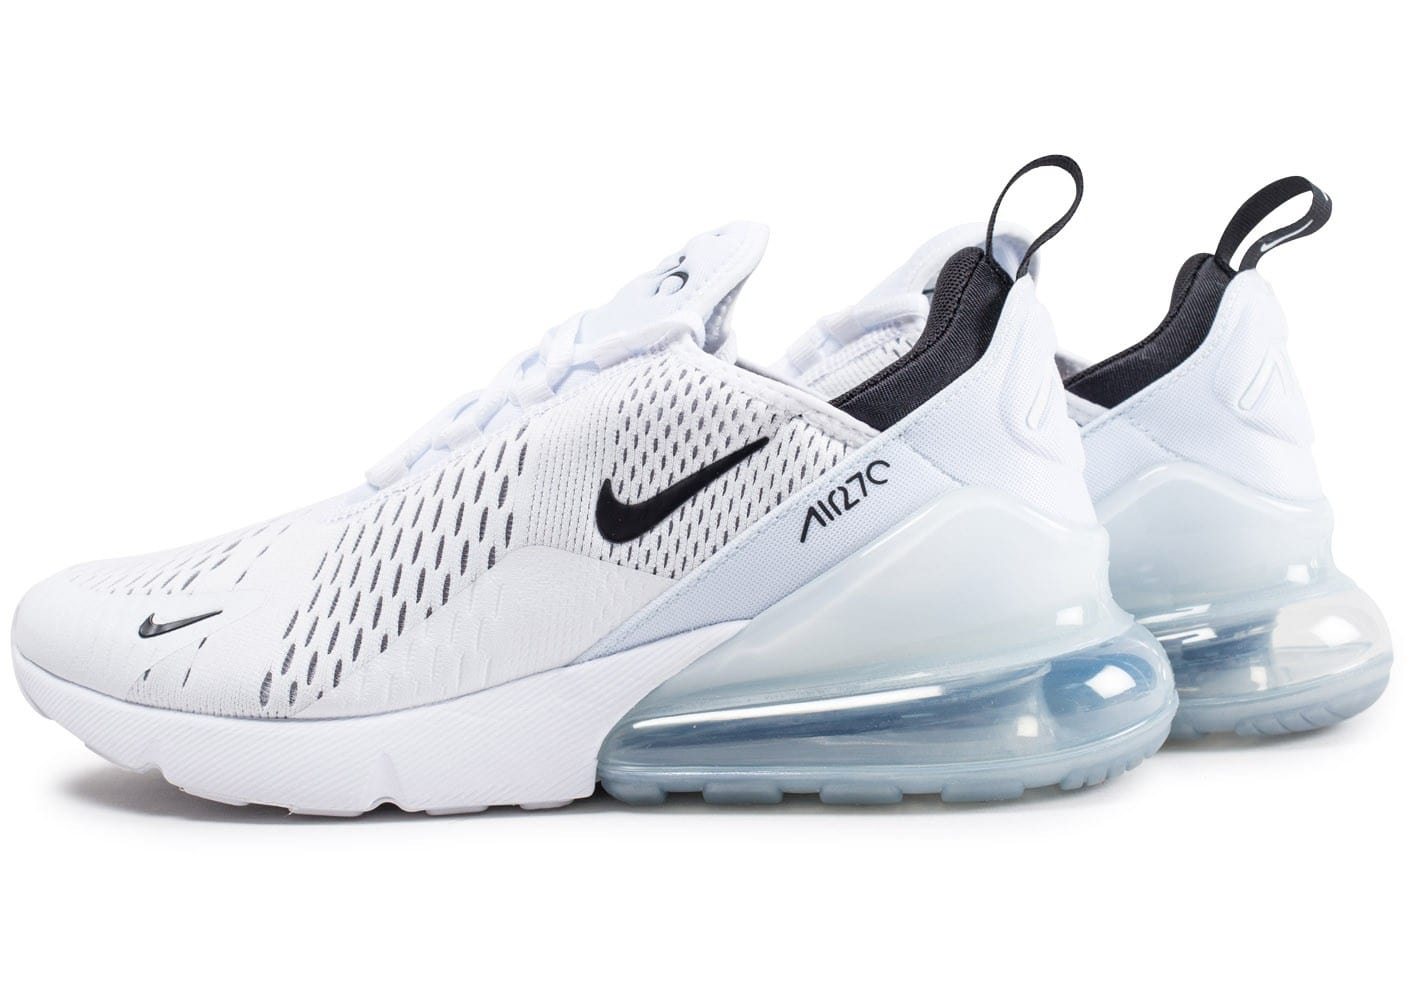 nike air max 270 blanche et noire chaussures homme chausport. Black Bedroom Furniture Sets. Home Design Ideas